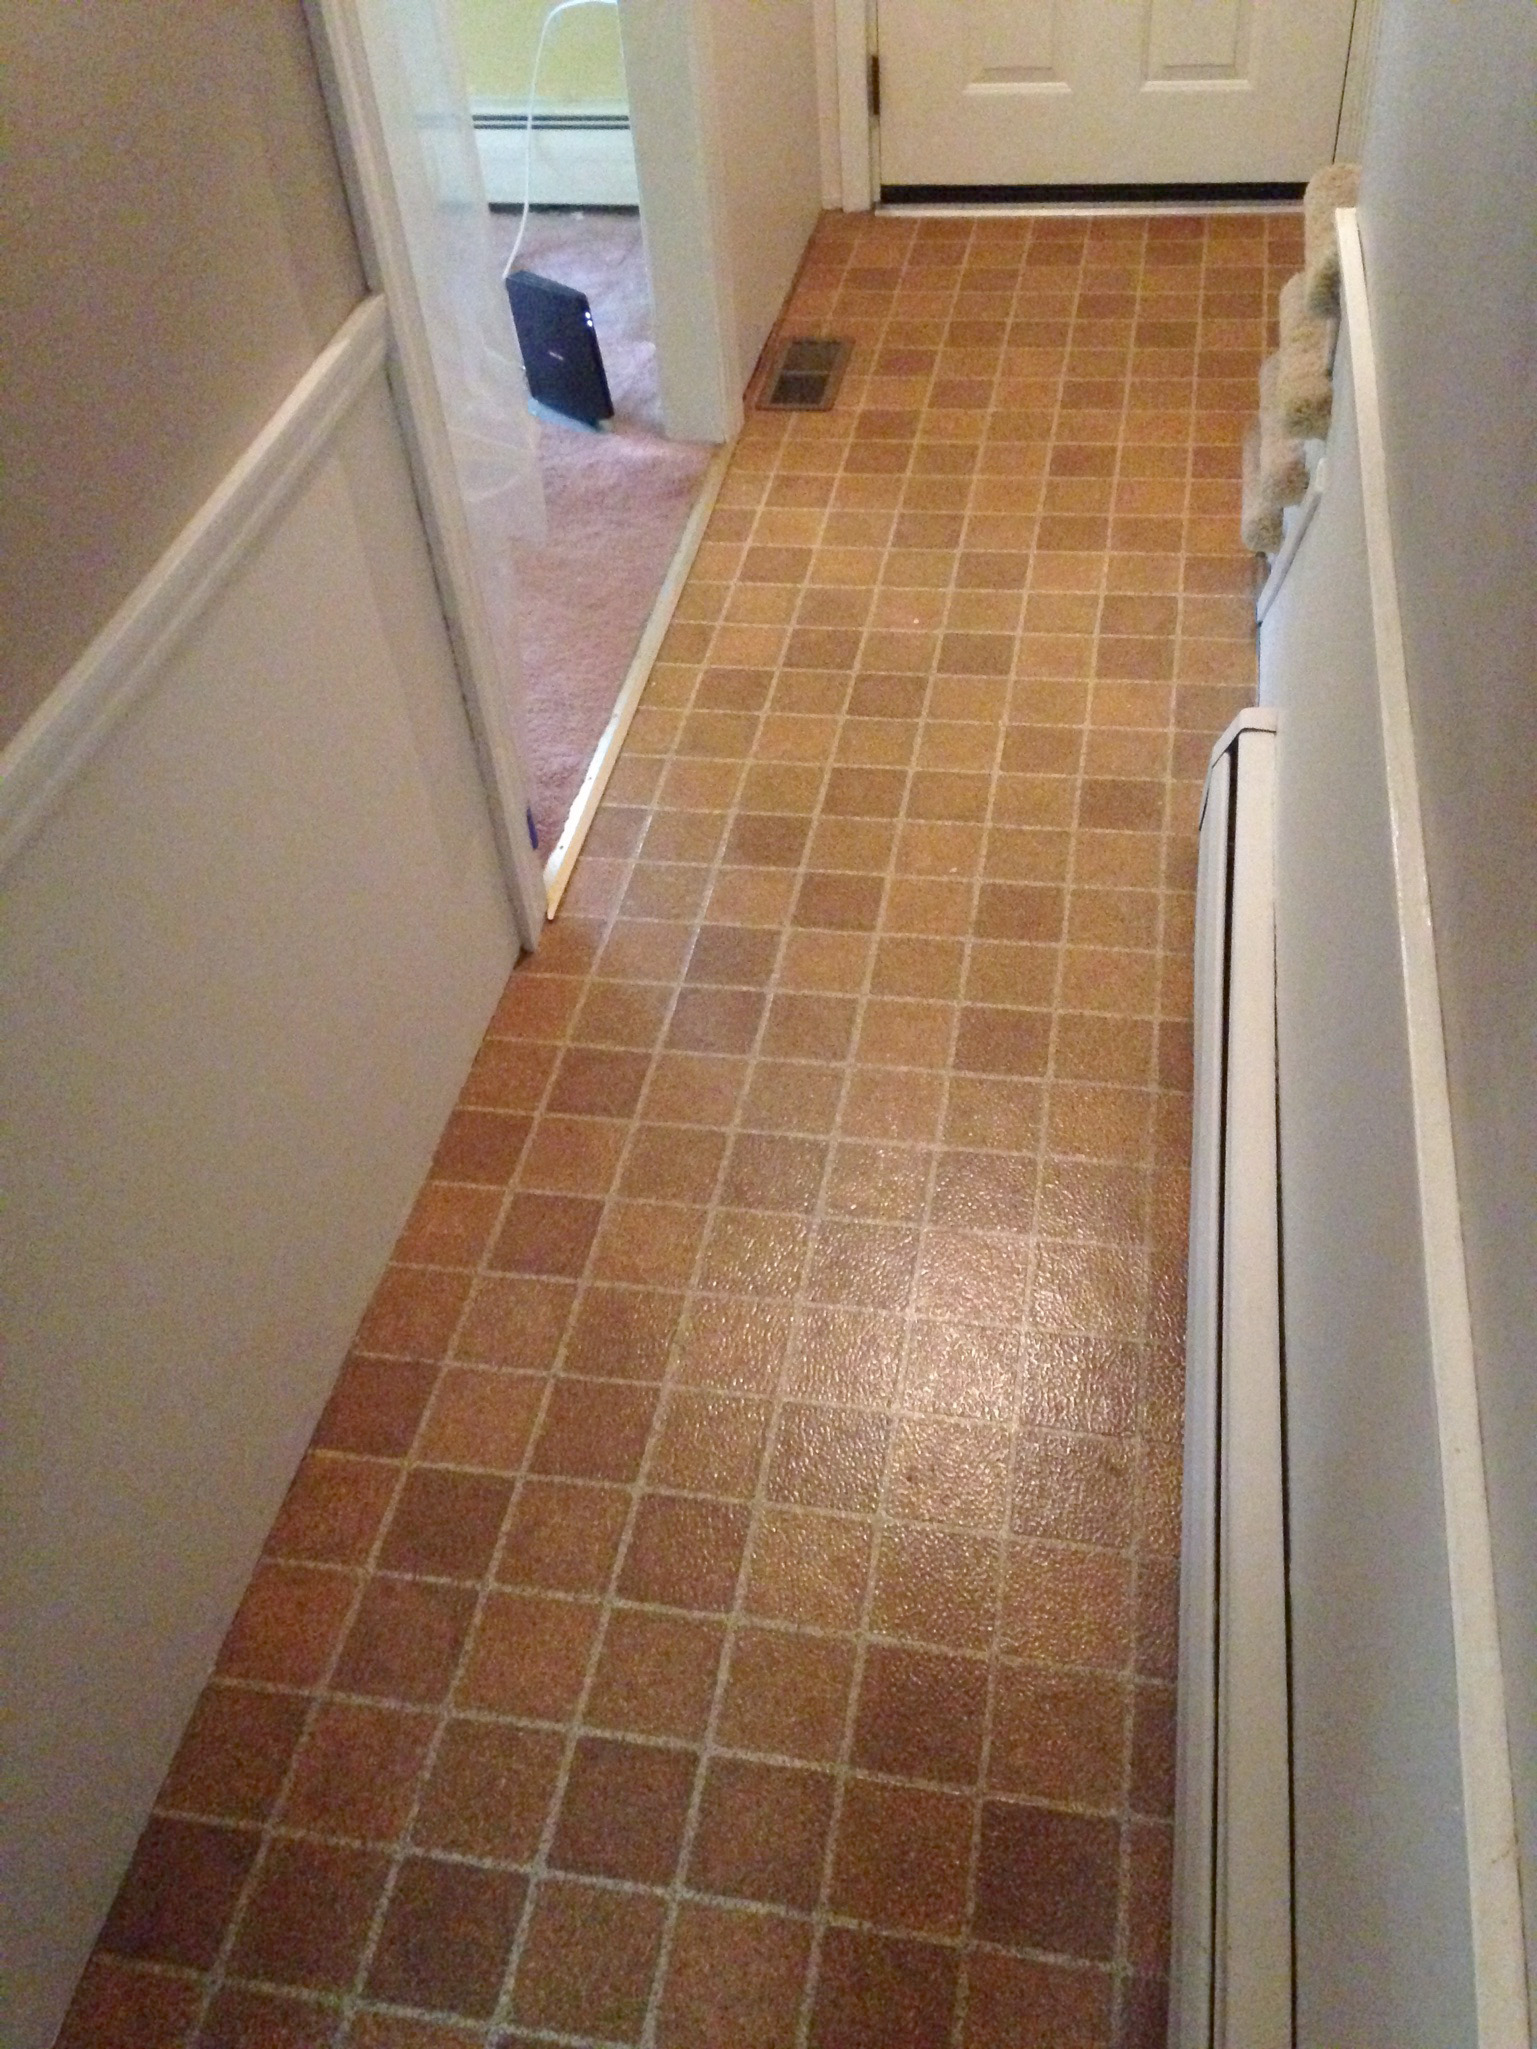 Removing Tiles and Installing Laminate Flooring